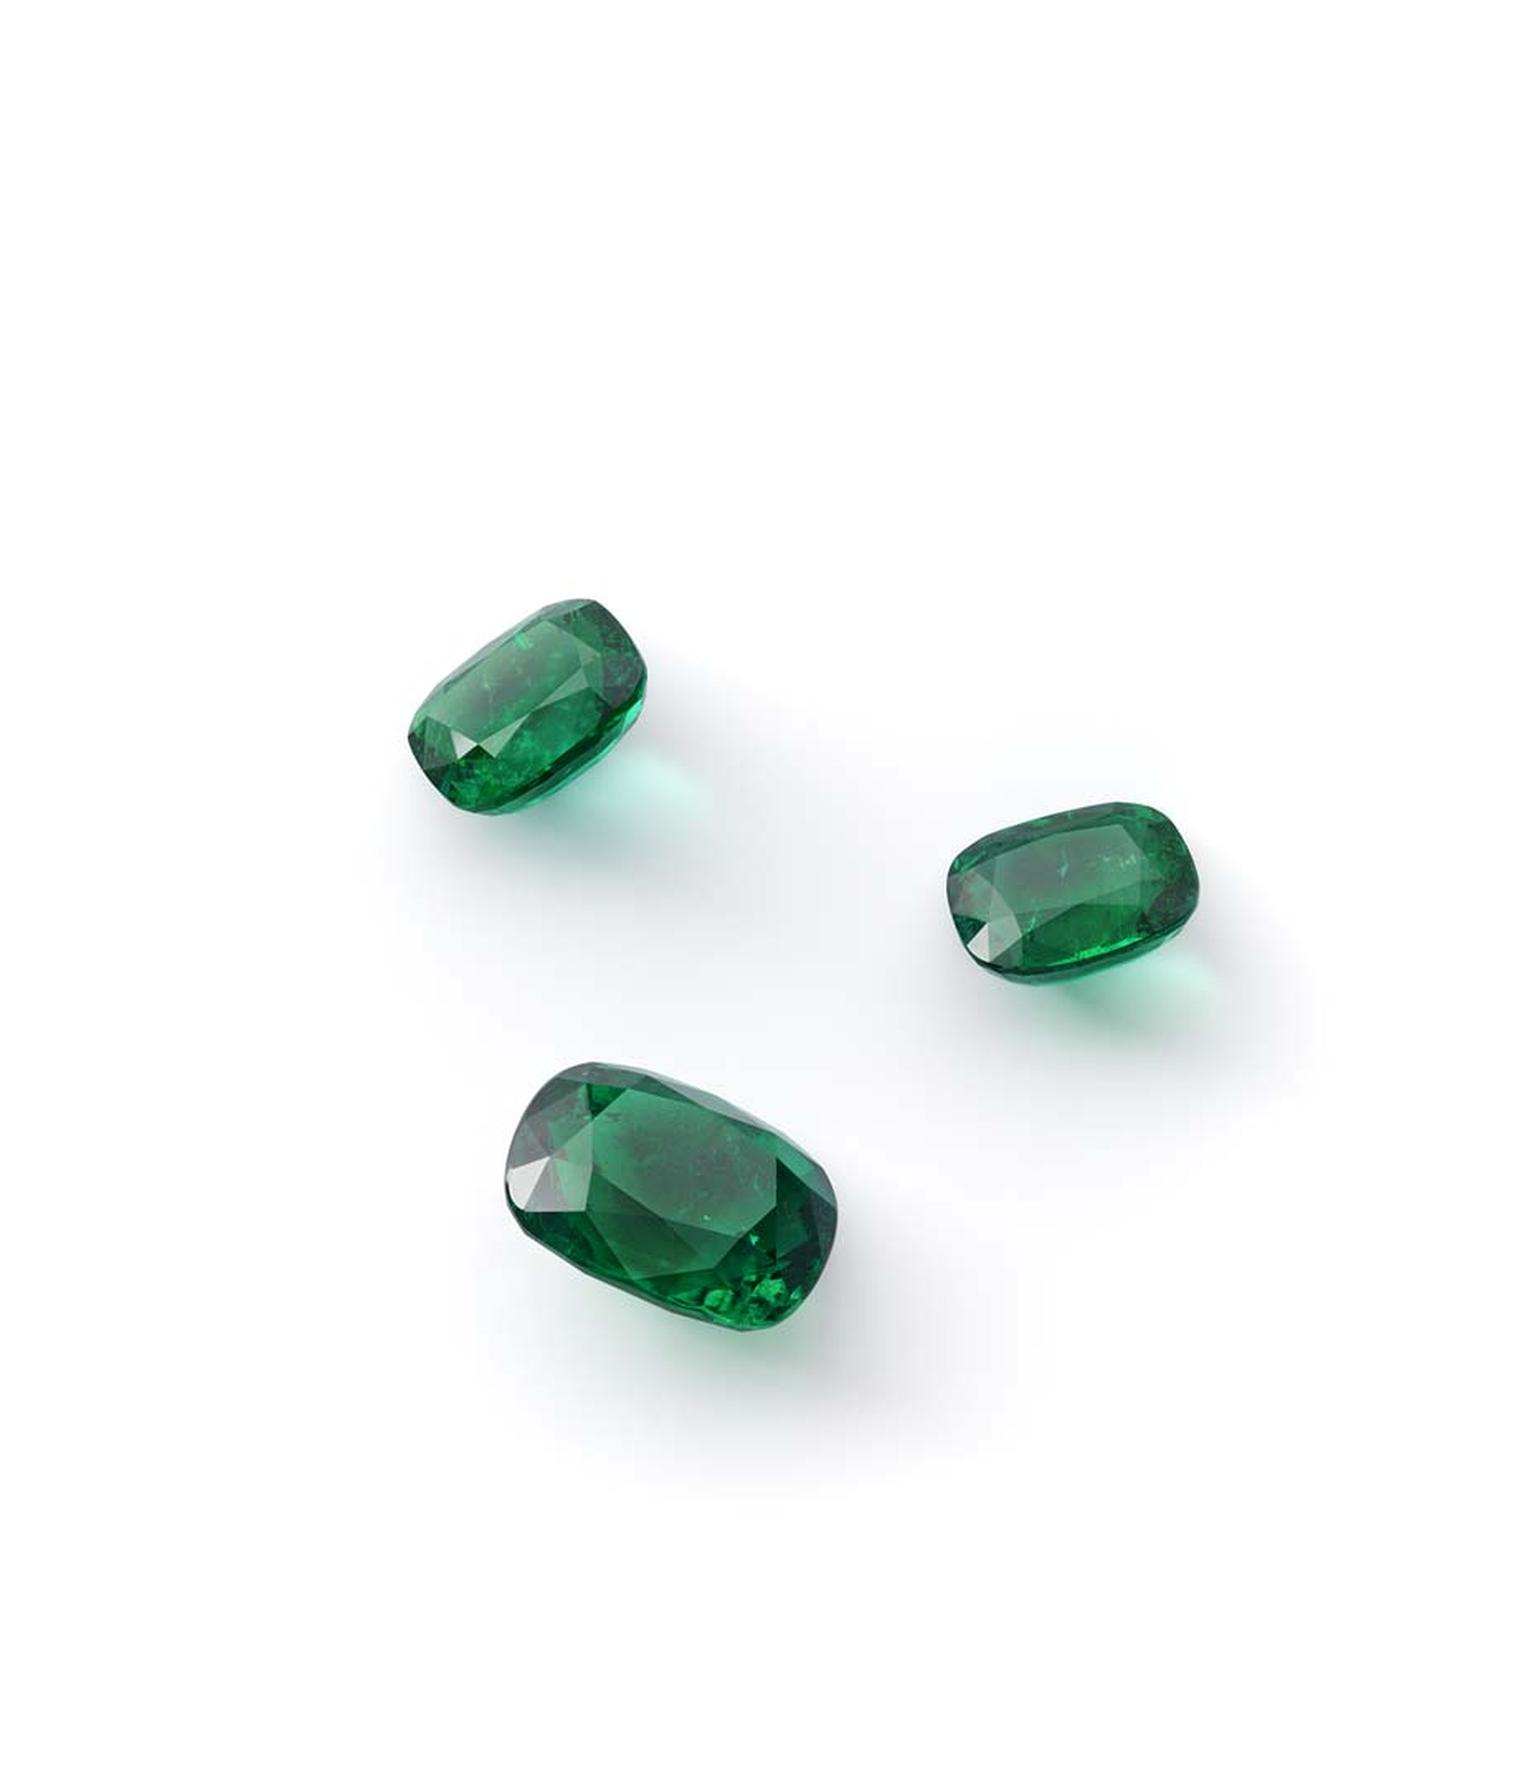 A selection of cut and polished Gemfields African emeralds.